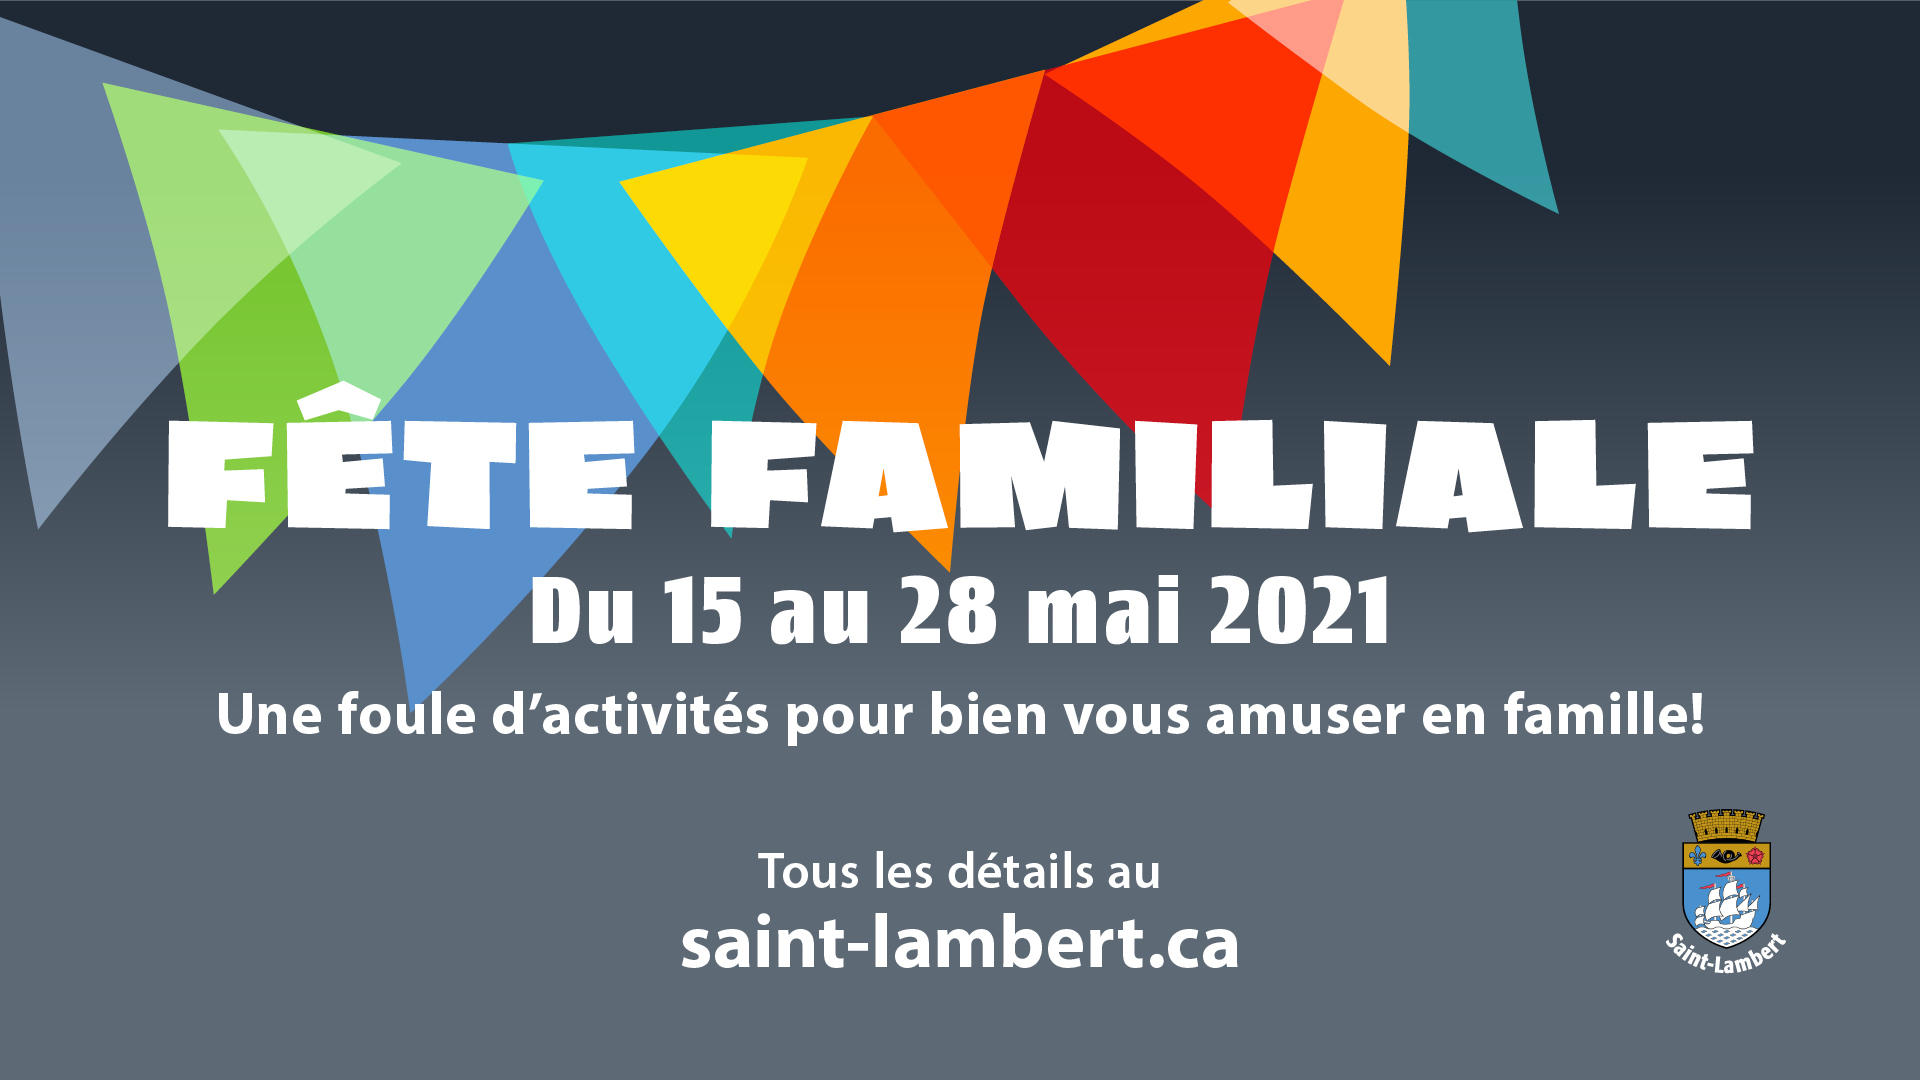 Saint-Lambert's Family Festival: a full slate of activities during the month of May!